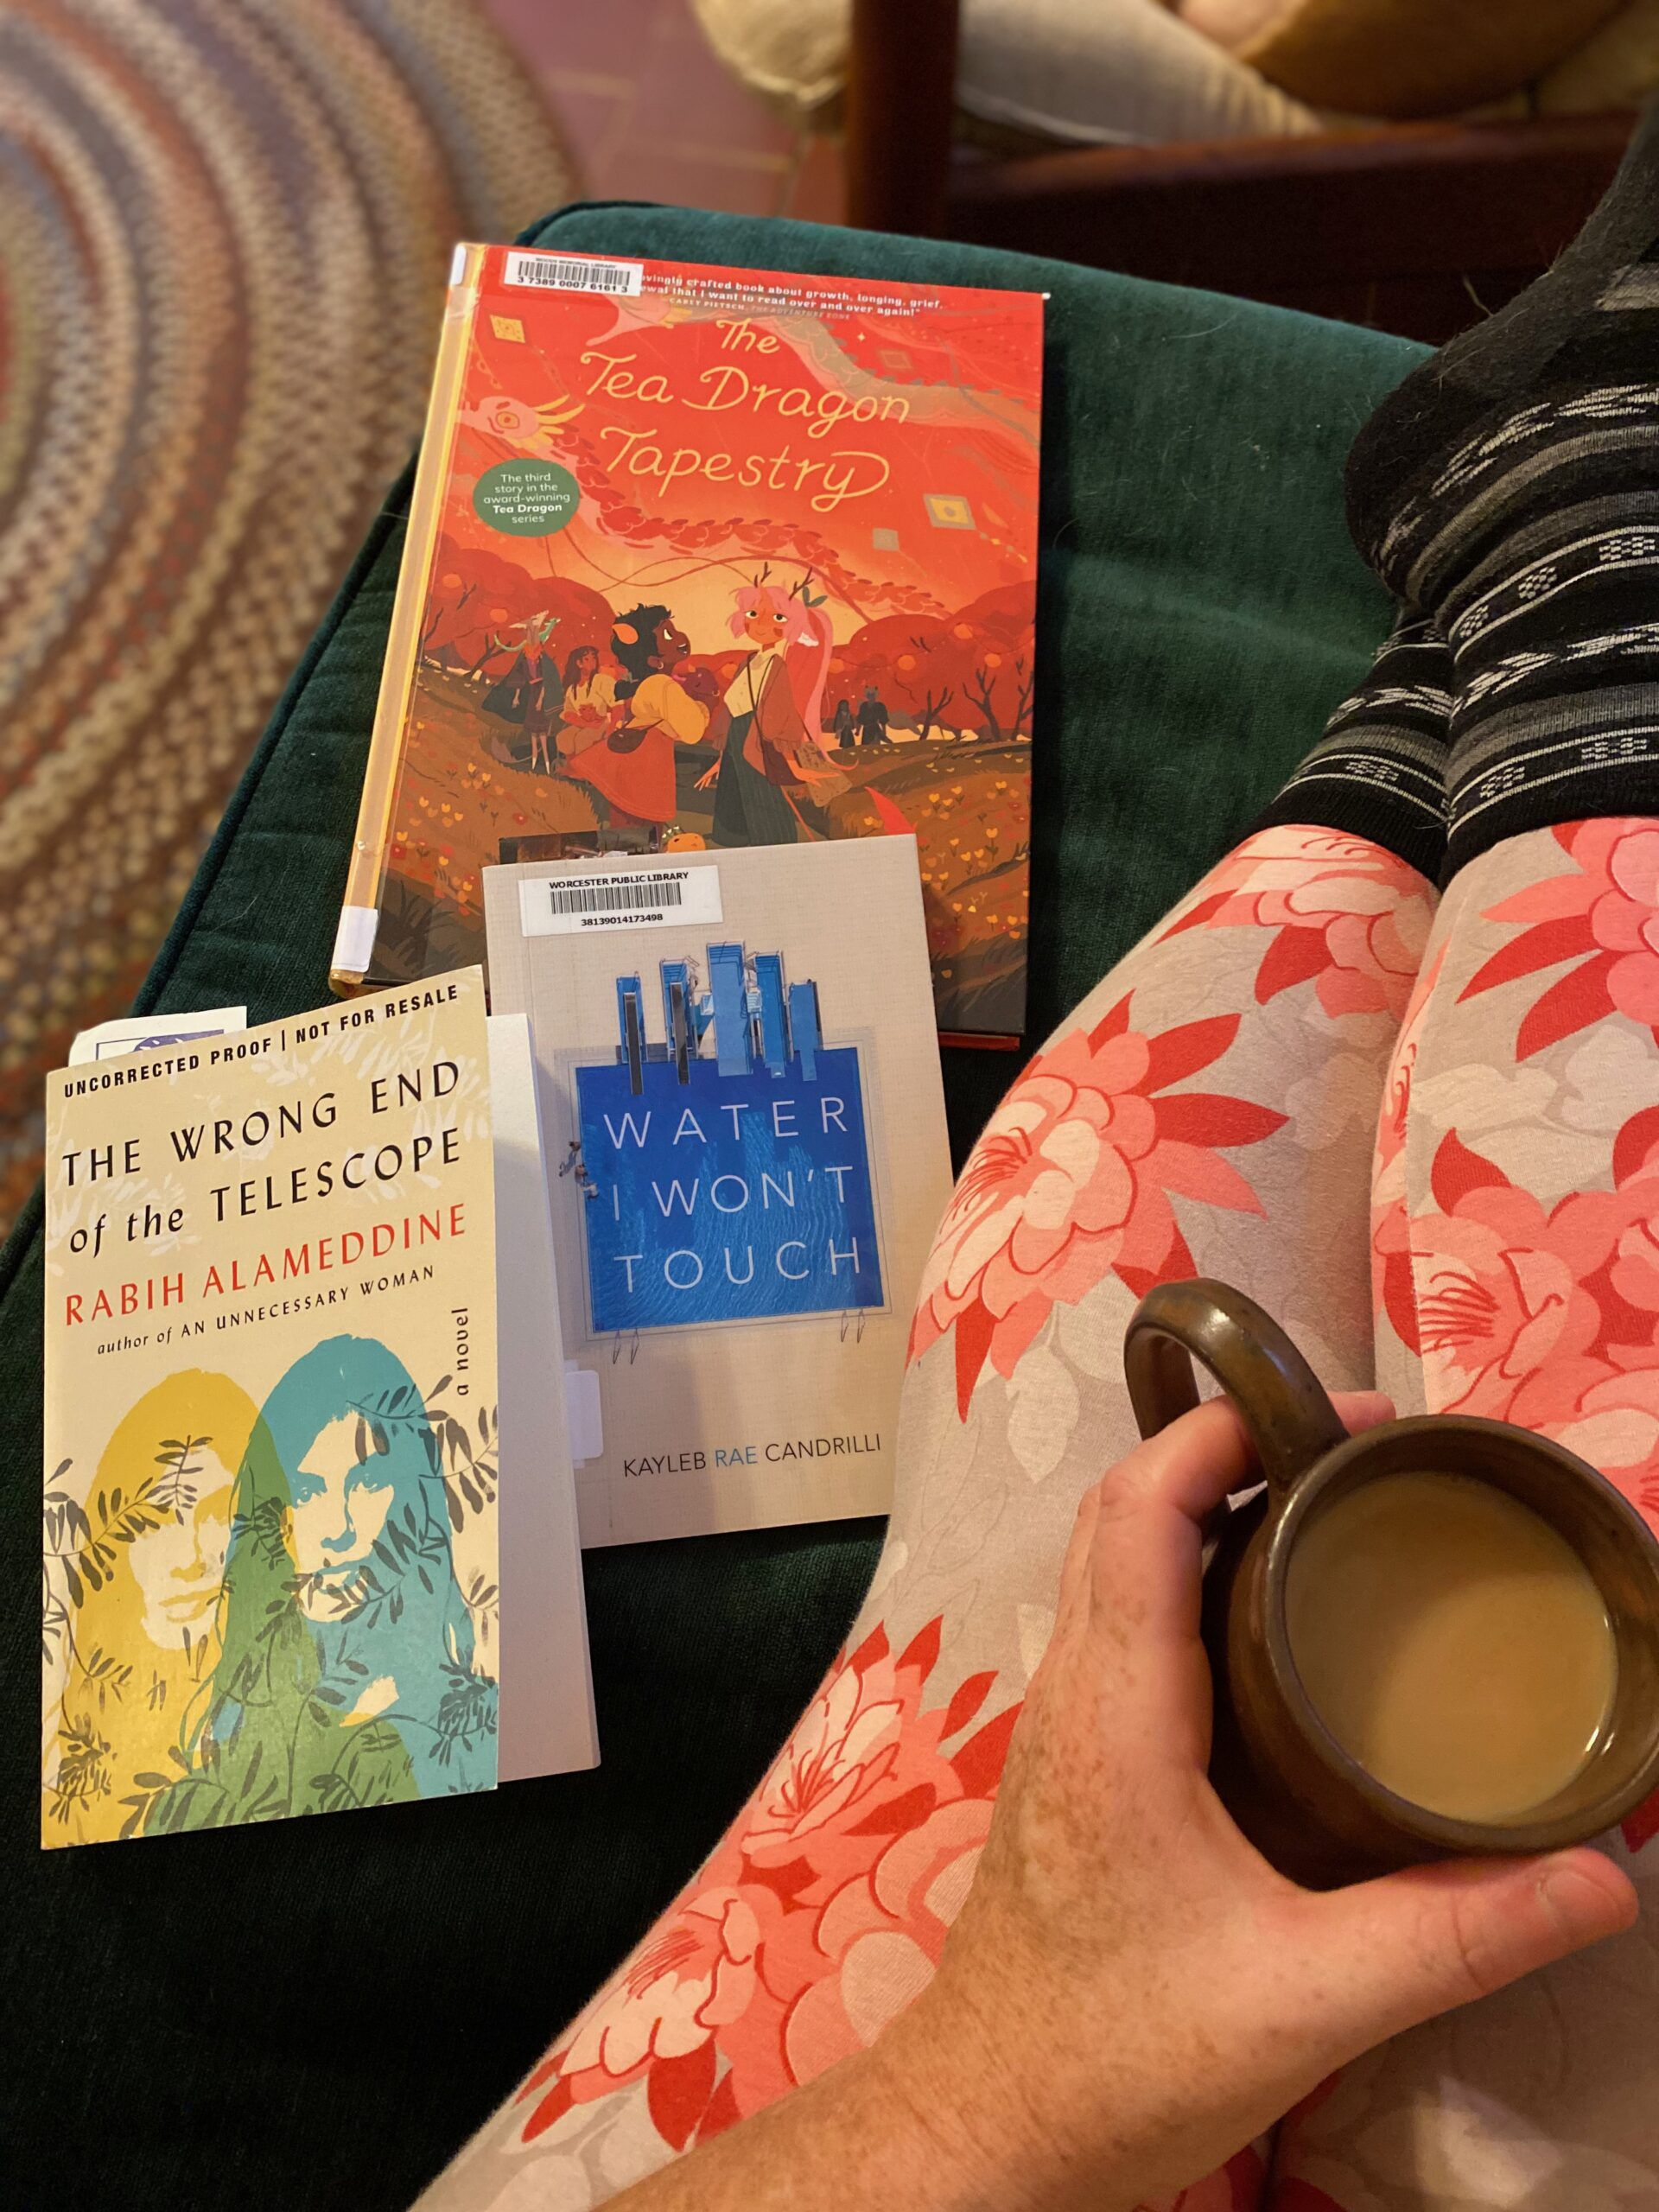 Image of my legs stretched out on a green couch. I am wearing leggings with large red flowers on them and holding a mug of tea. Three books ar on the couch next to me: The Tea Dragon Tapestry, Water I Won't Touch, and The Wrong End of the Telescope. Photo by me.